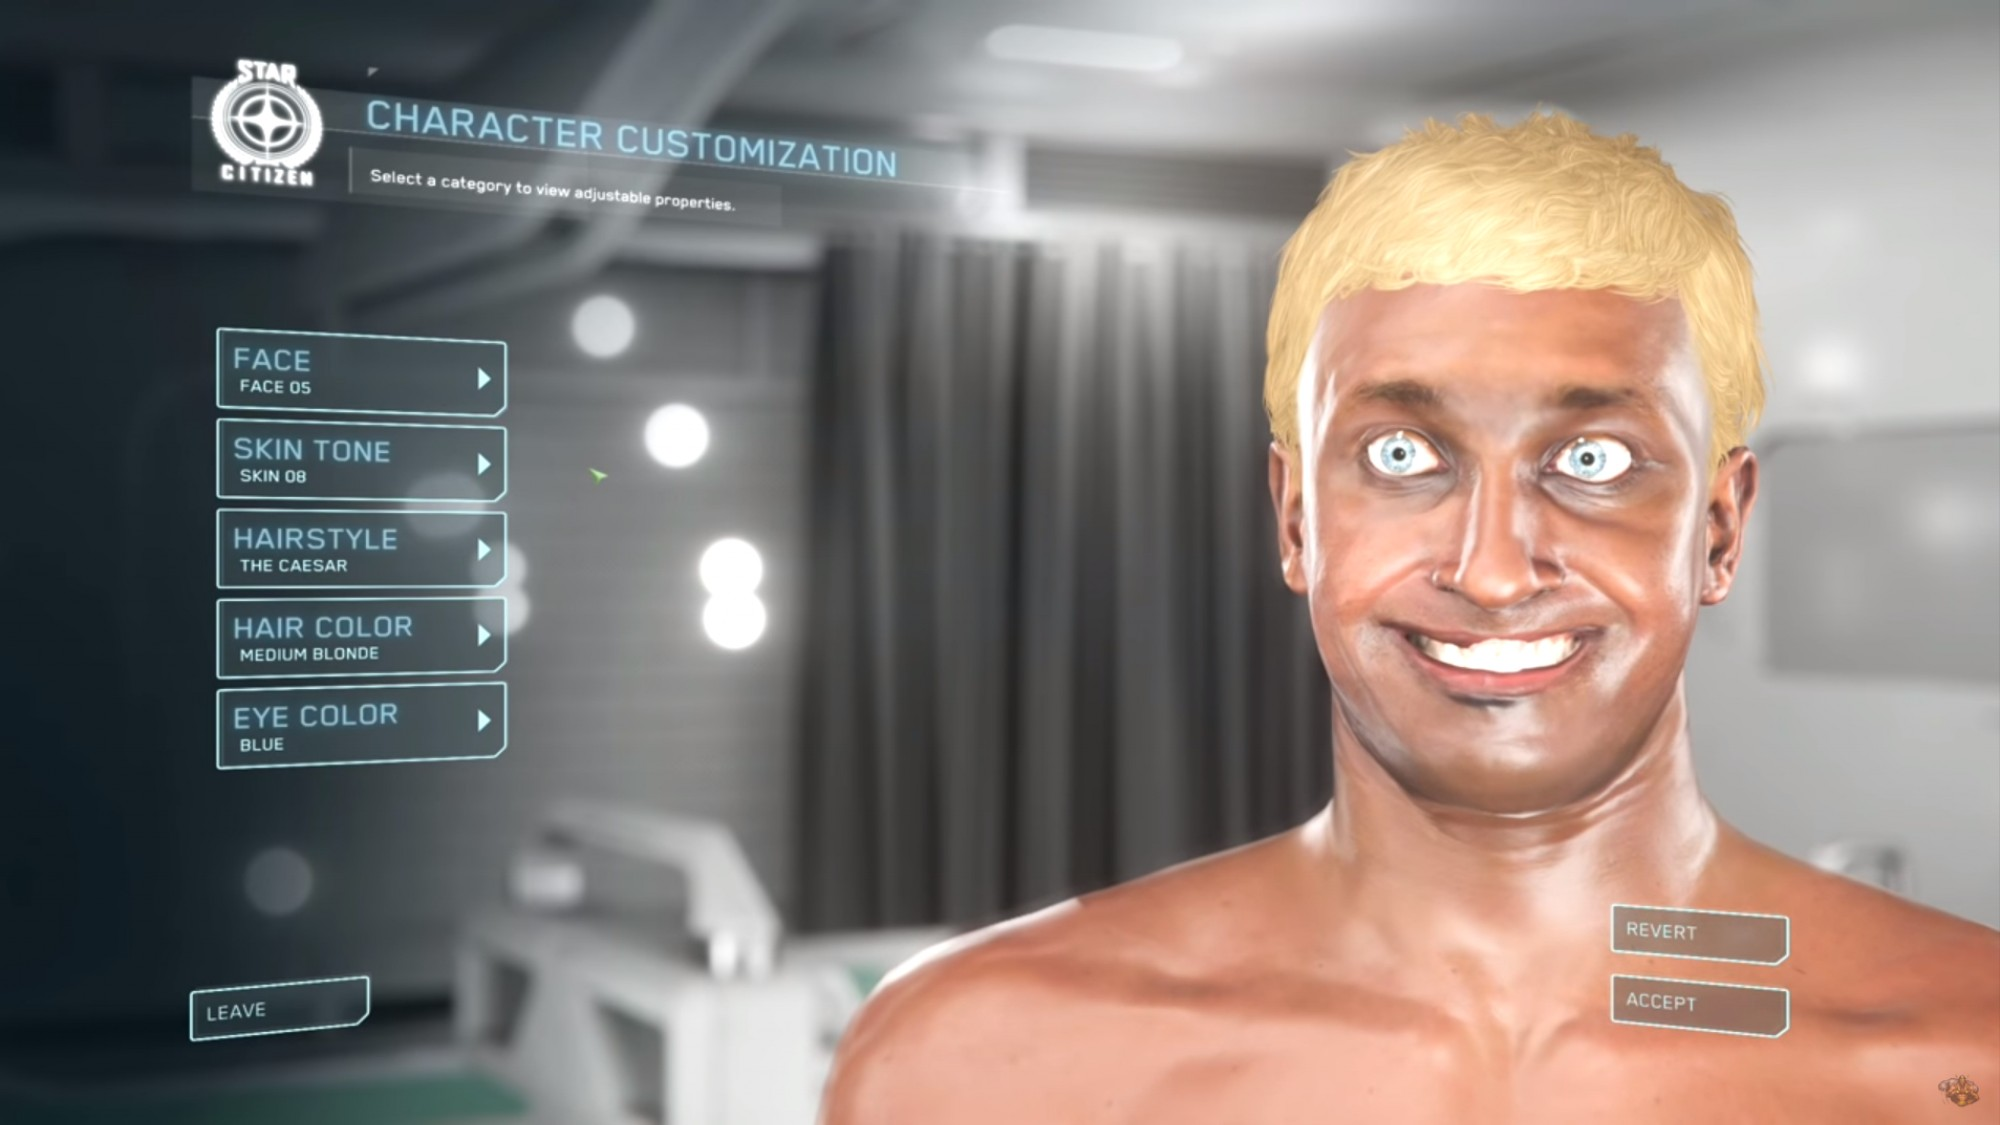 Star Citizen' Says Its Advanced Face Tracking Tech Isn't